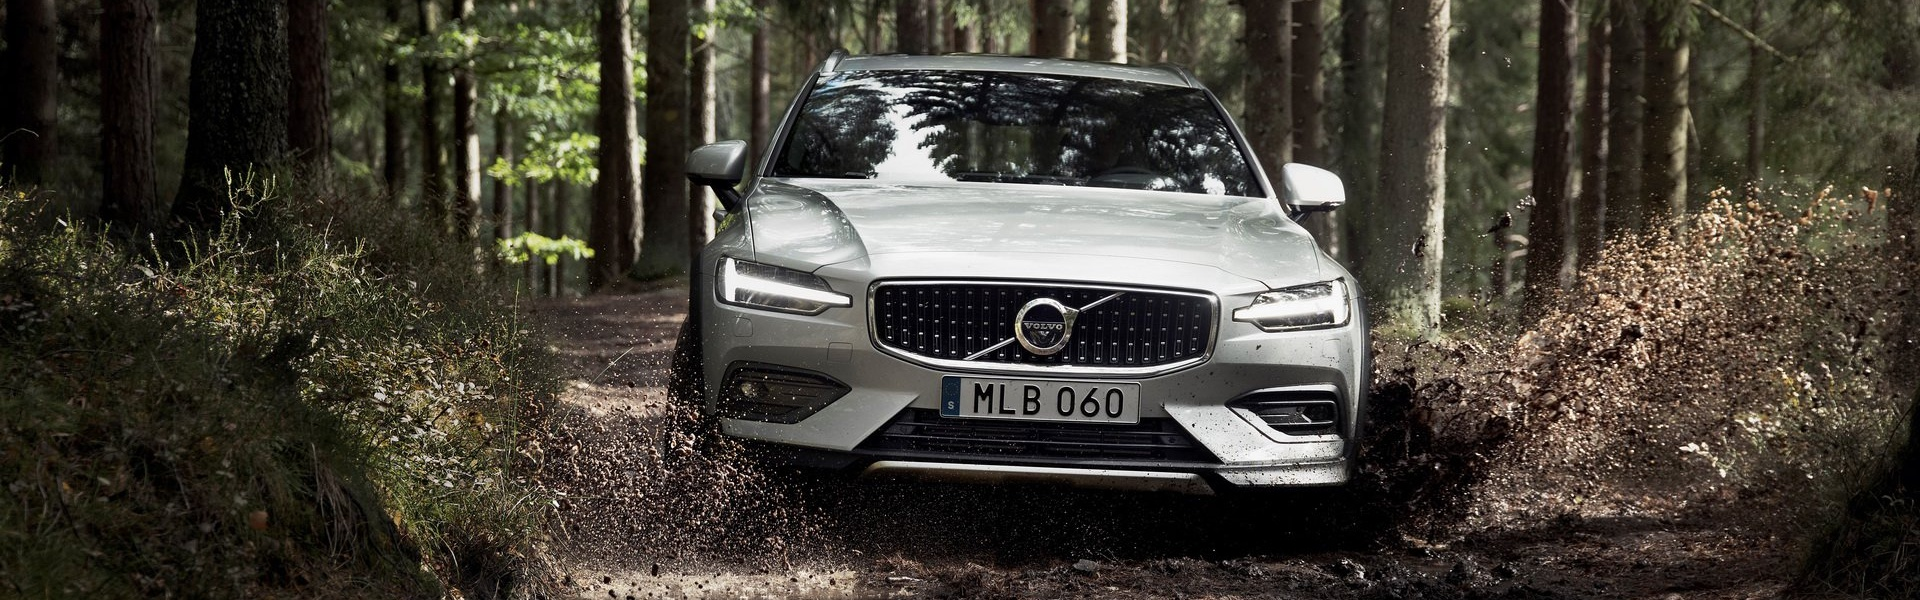 11ea5415-volvo-v60-cross-country-all-new-unveiled-11.jpg